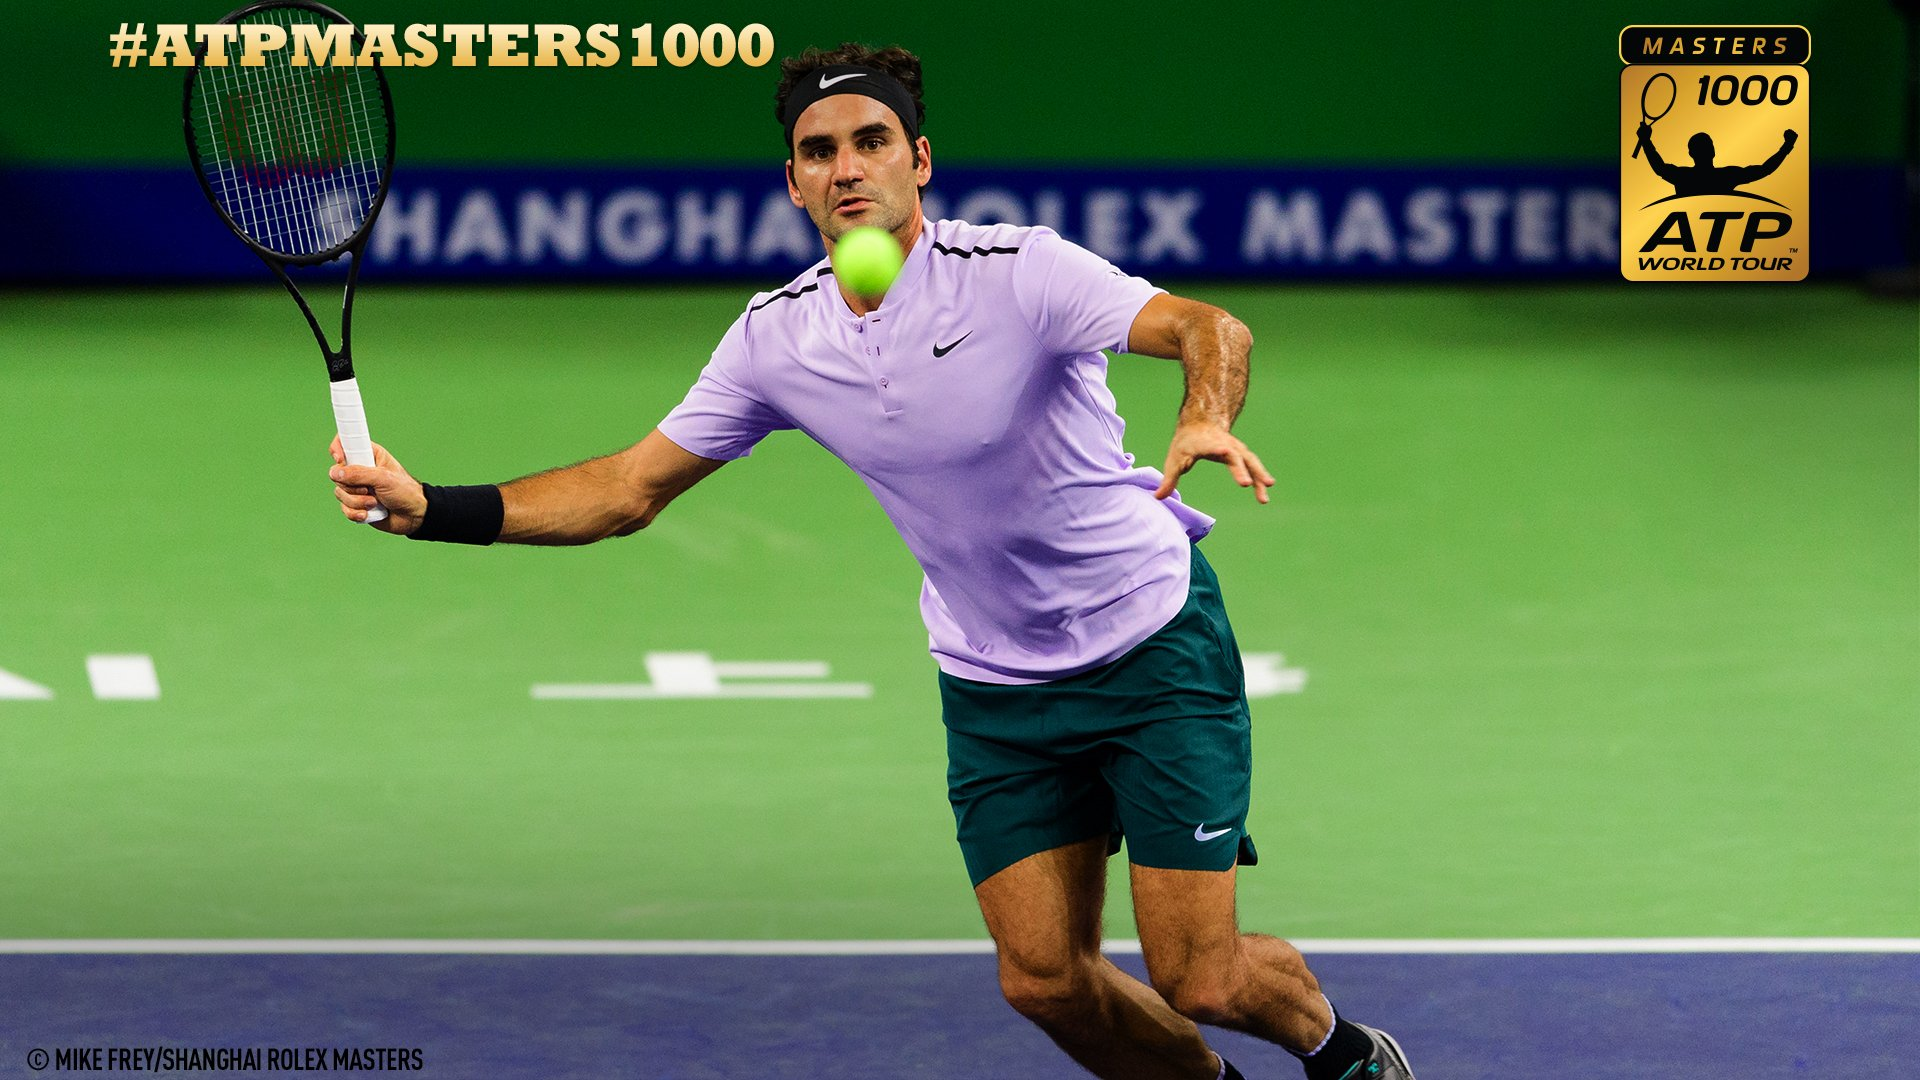 2nd #SHRolexMasters �� in his sights?  Federer sets QF clash with Gasquet ➡️ https://t.co/9XbhWk1jjs https://t.co/5qAIvdIkRS